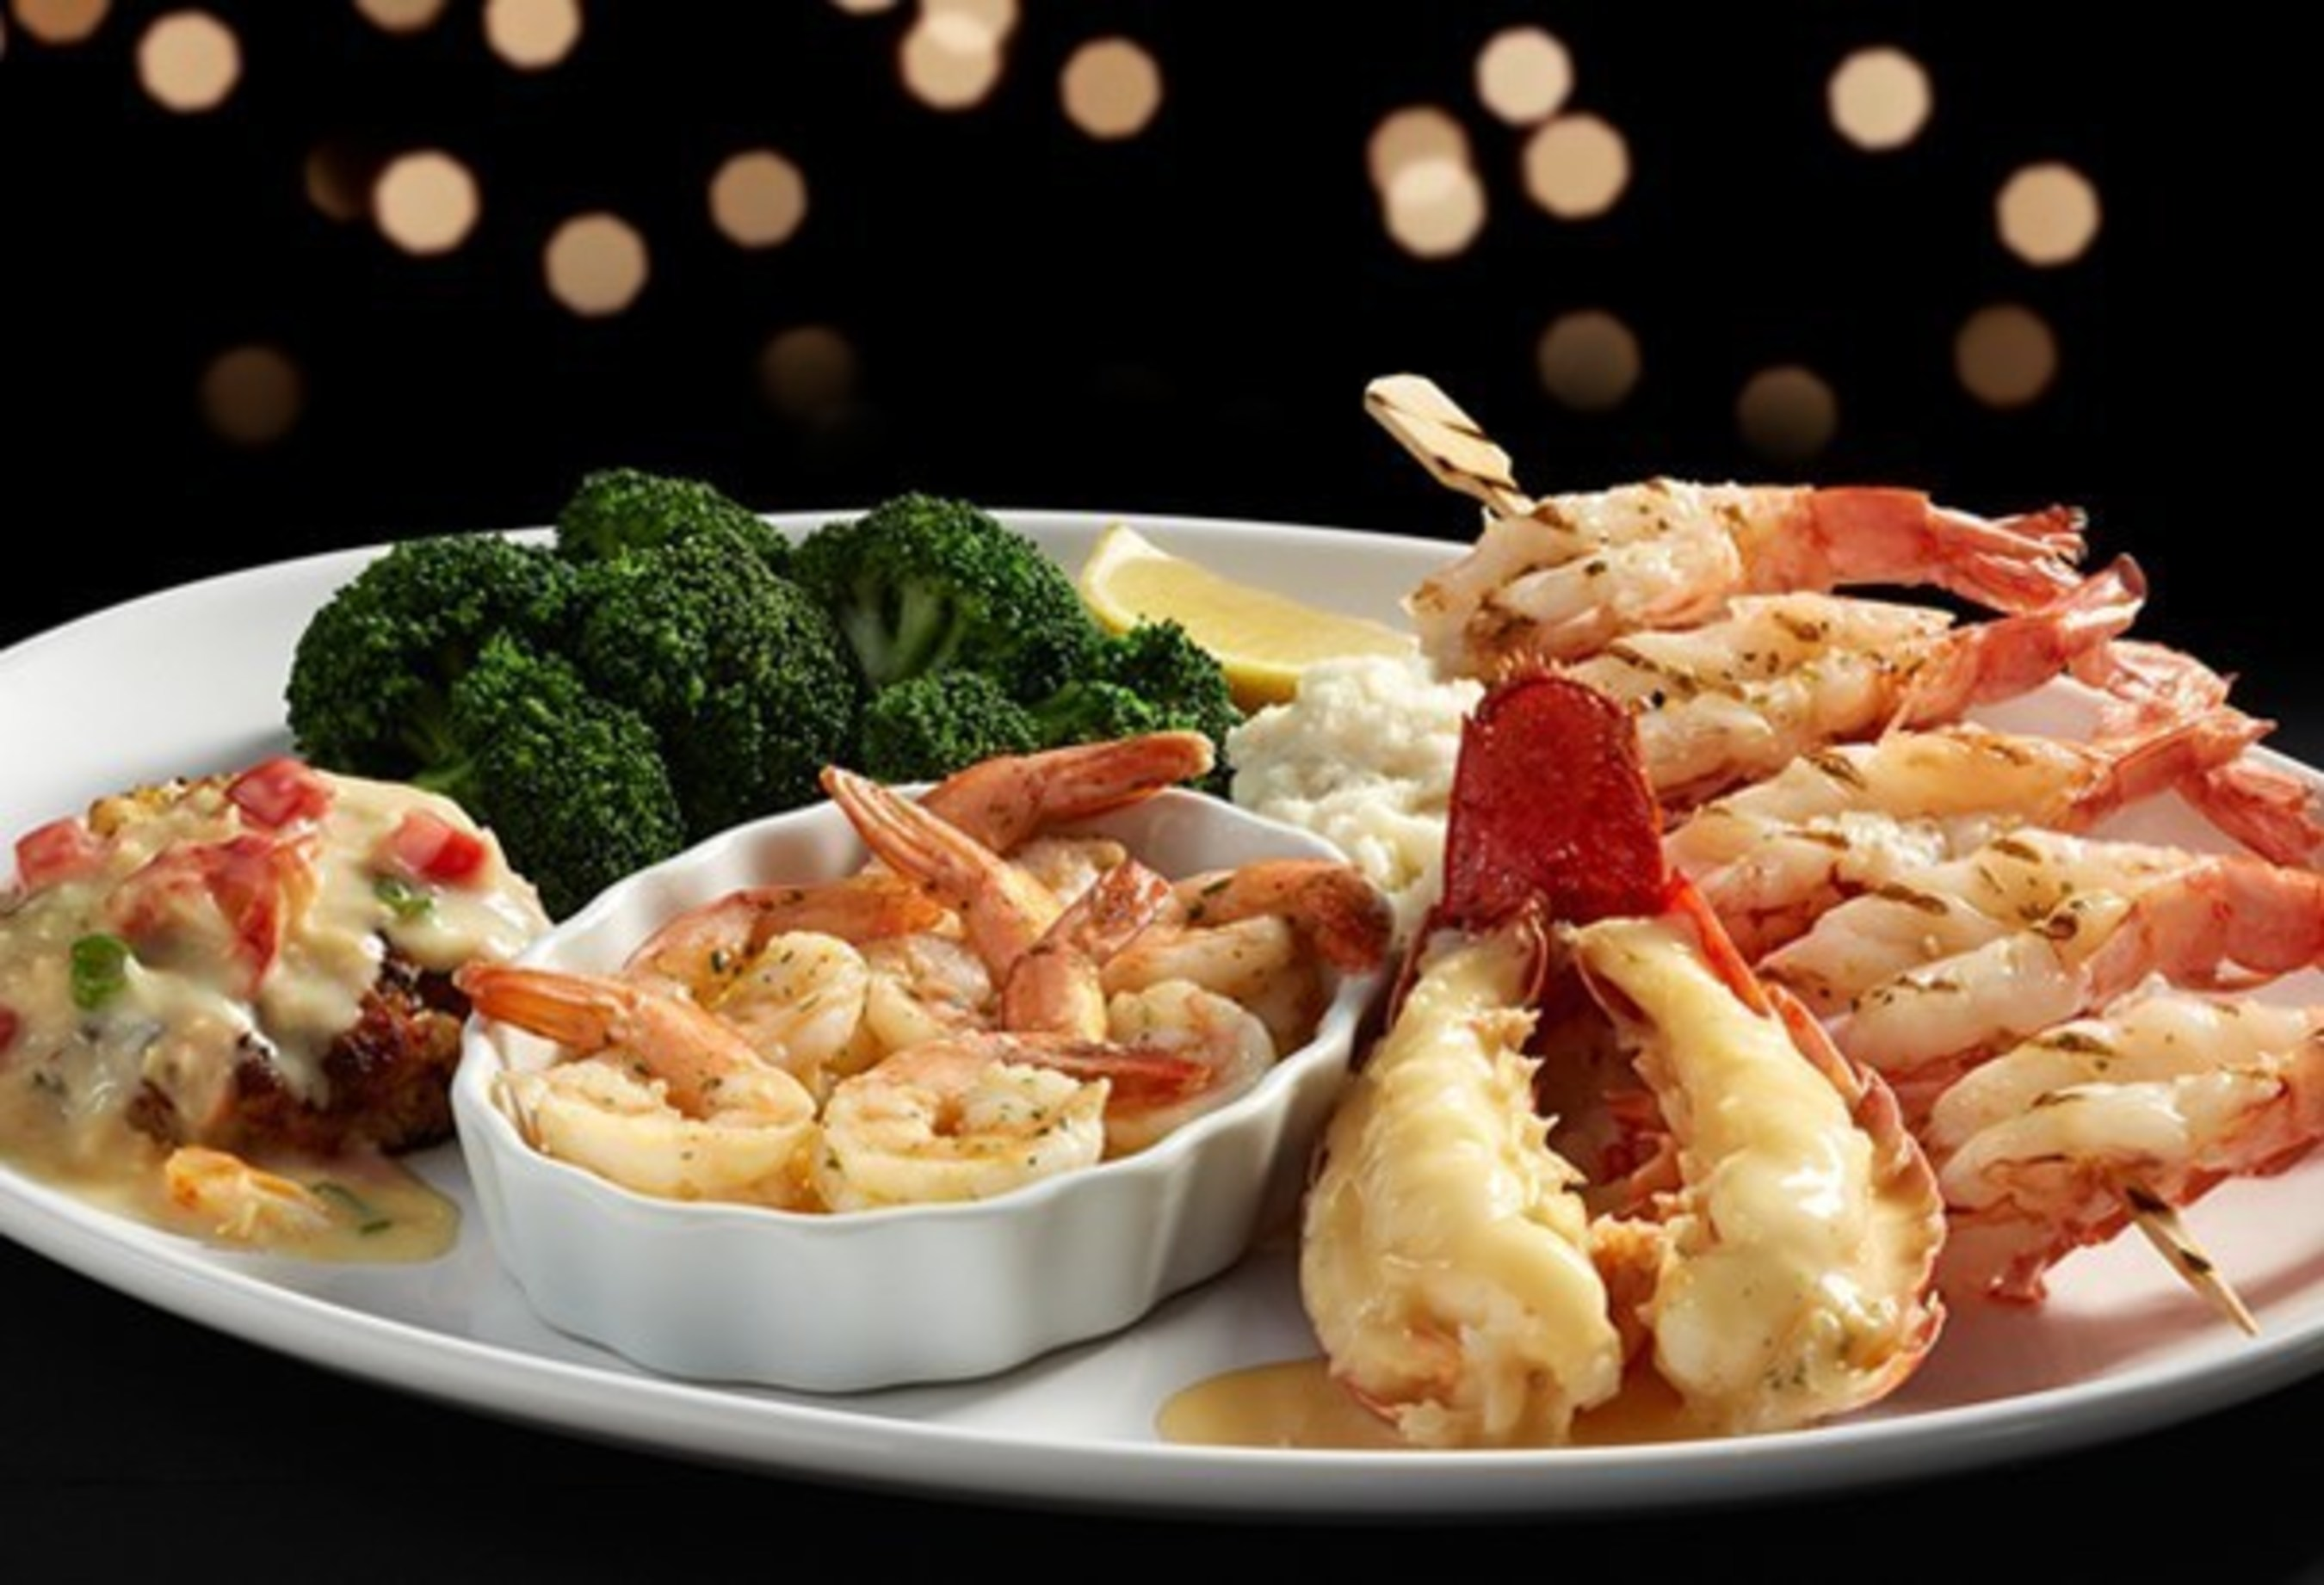 Red Lobster's NEW! Grand Seafood Feast features a wood-grilled Maine lobster tail with a white wine and butter sauce, a crab hollandaise-topped lump crab cake, a garlic-grilled red shrimp skewer and Red Lobster's signature hand-crafted garlic shrimp scampi.